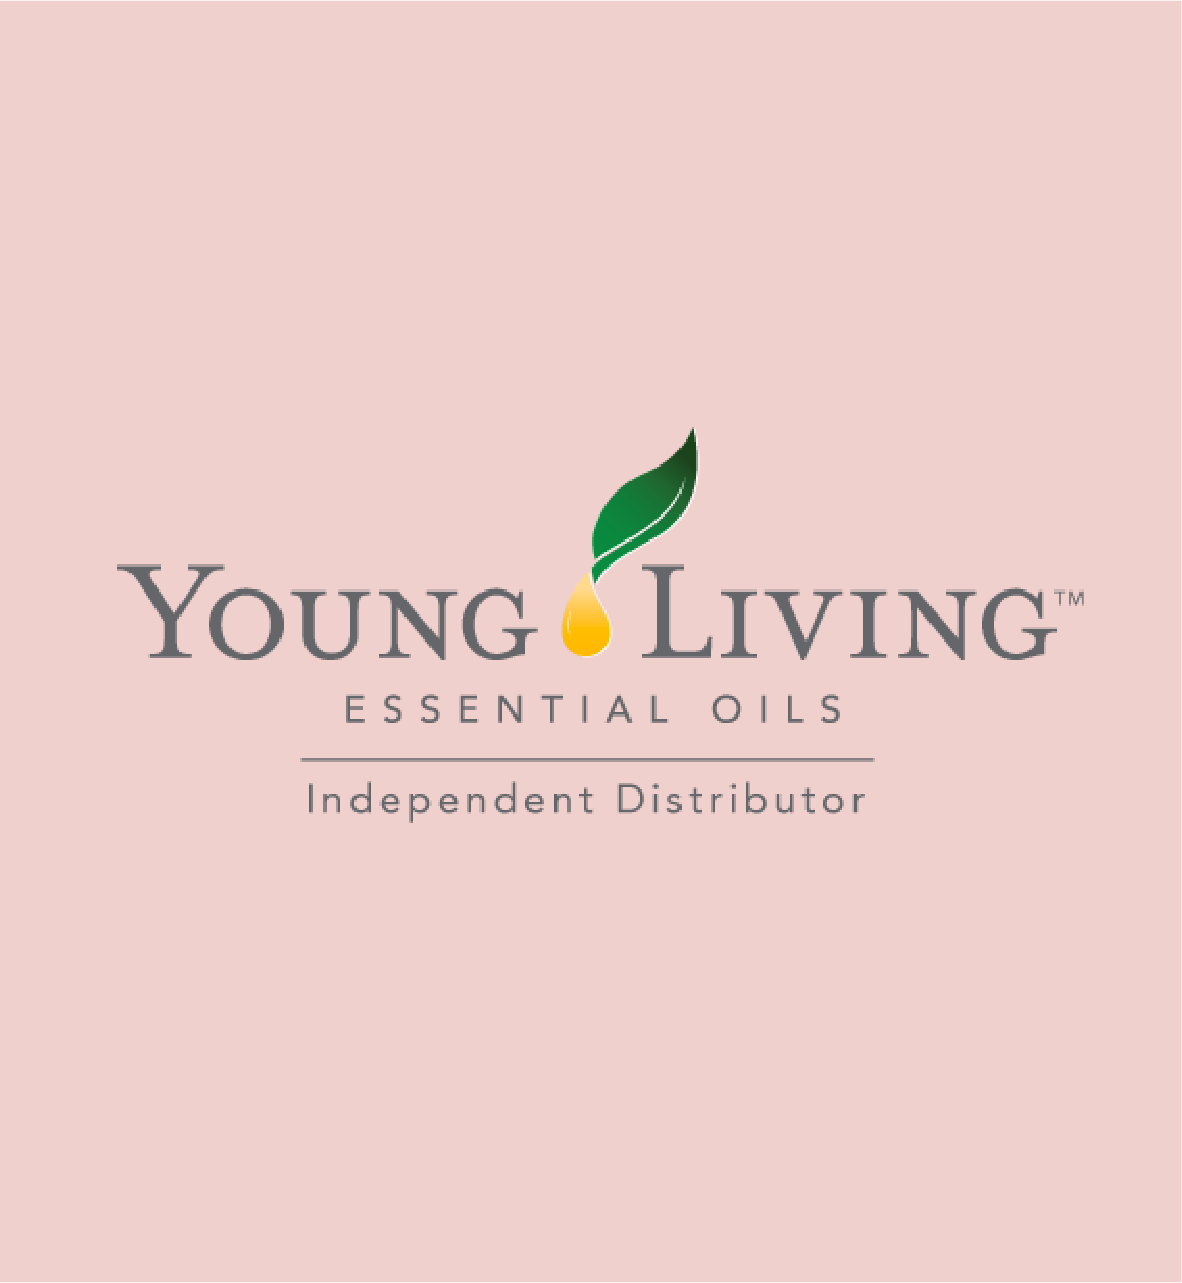 youngliving-04.png